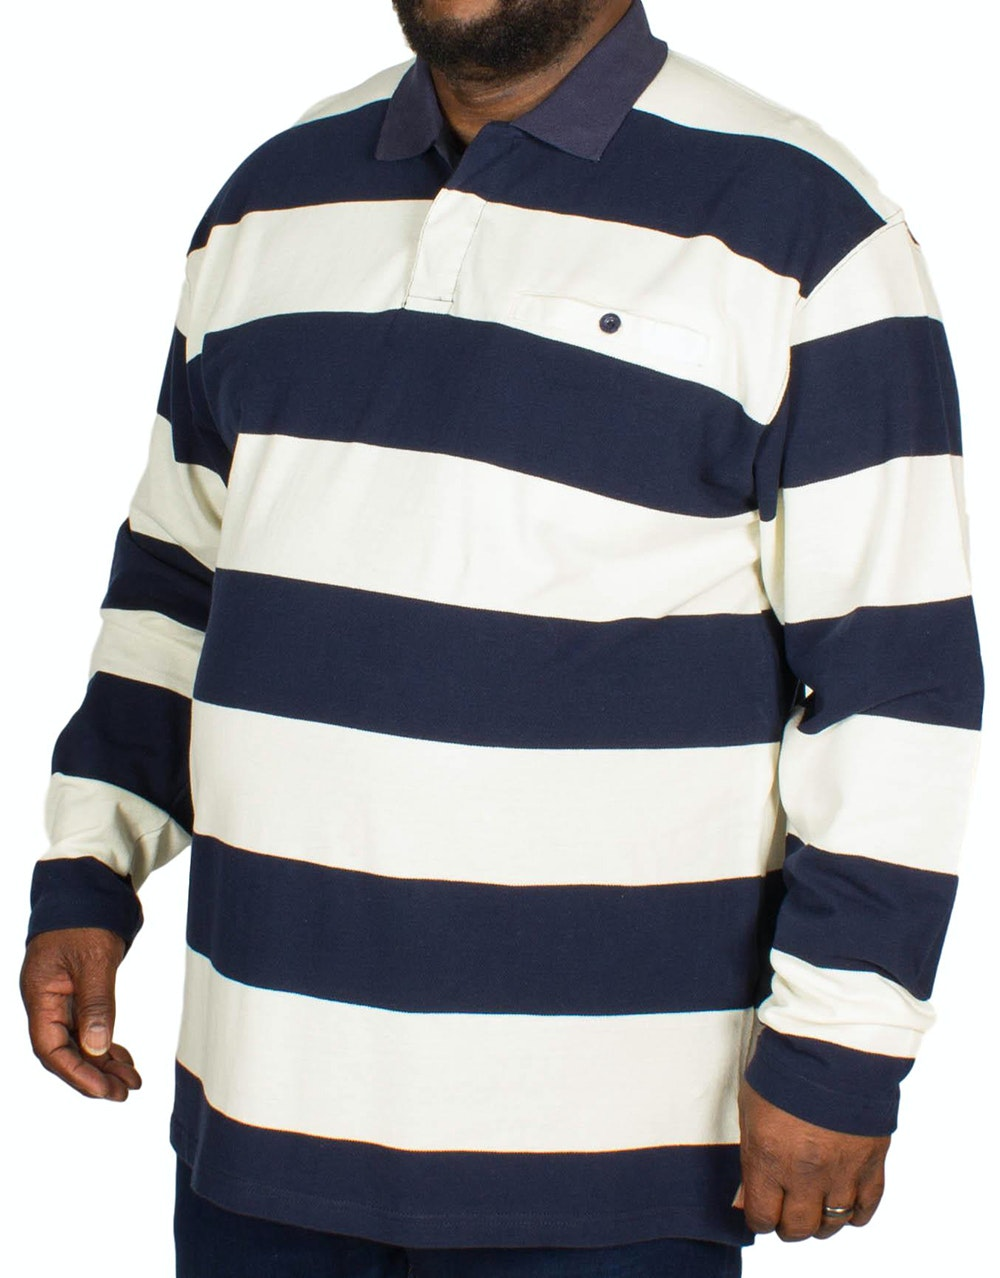 KAM Long Sleeve Rugby Pique Polo Navy